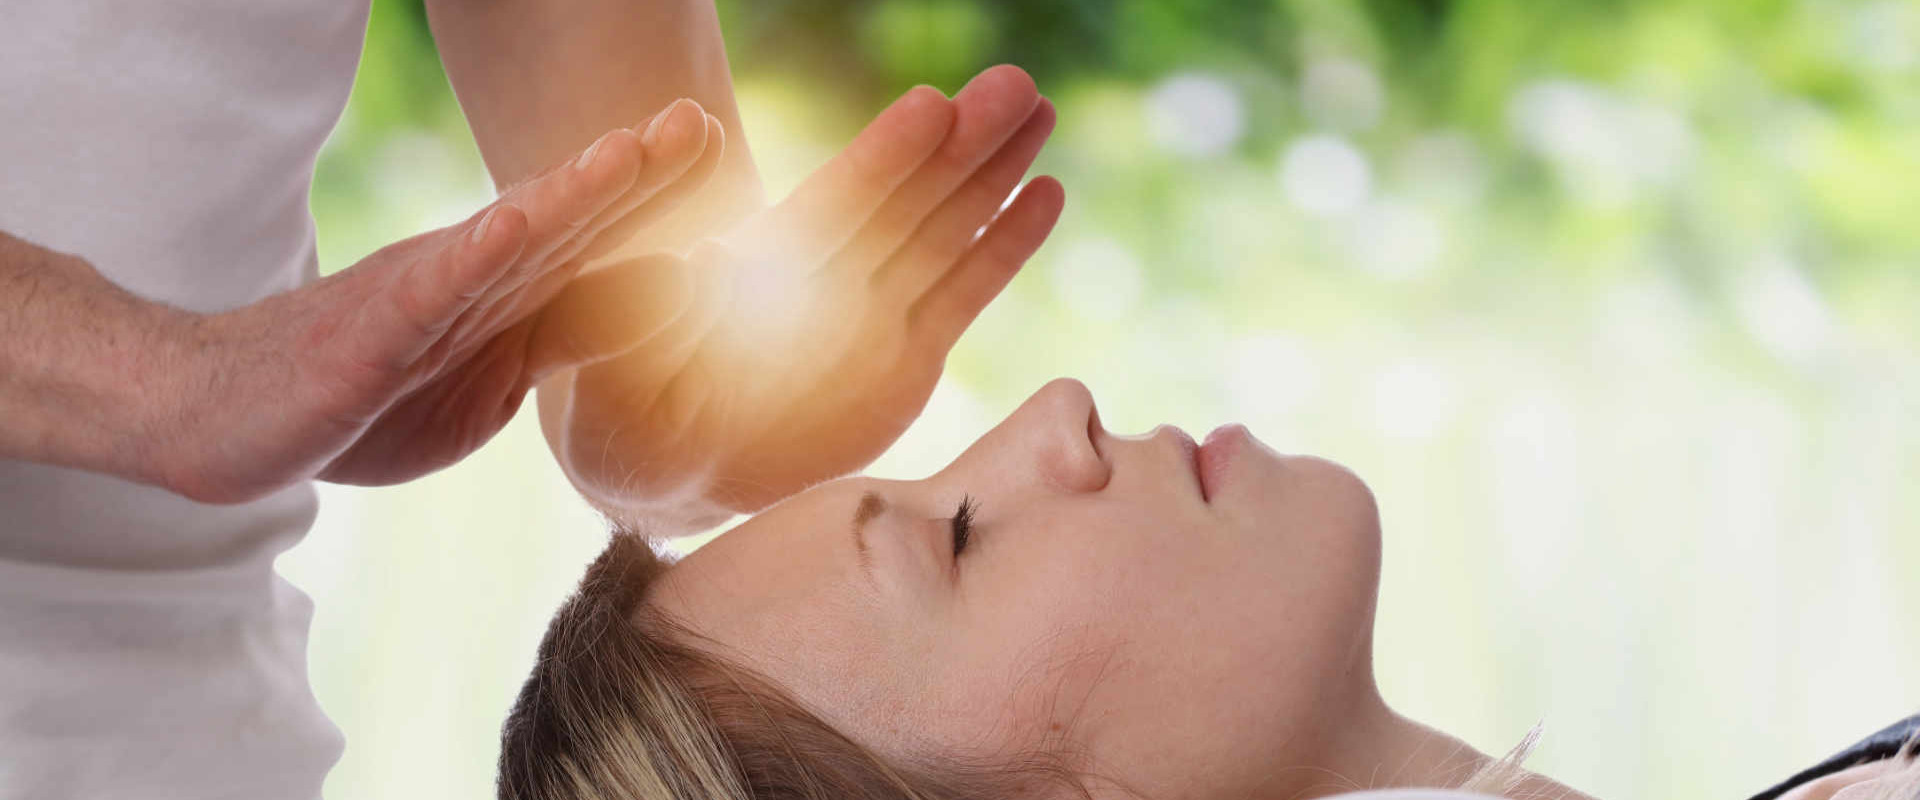 Reiki Healing, Reiki Classes - Basics to Masters level